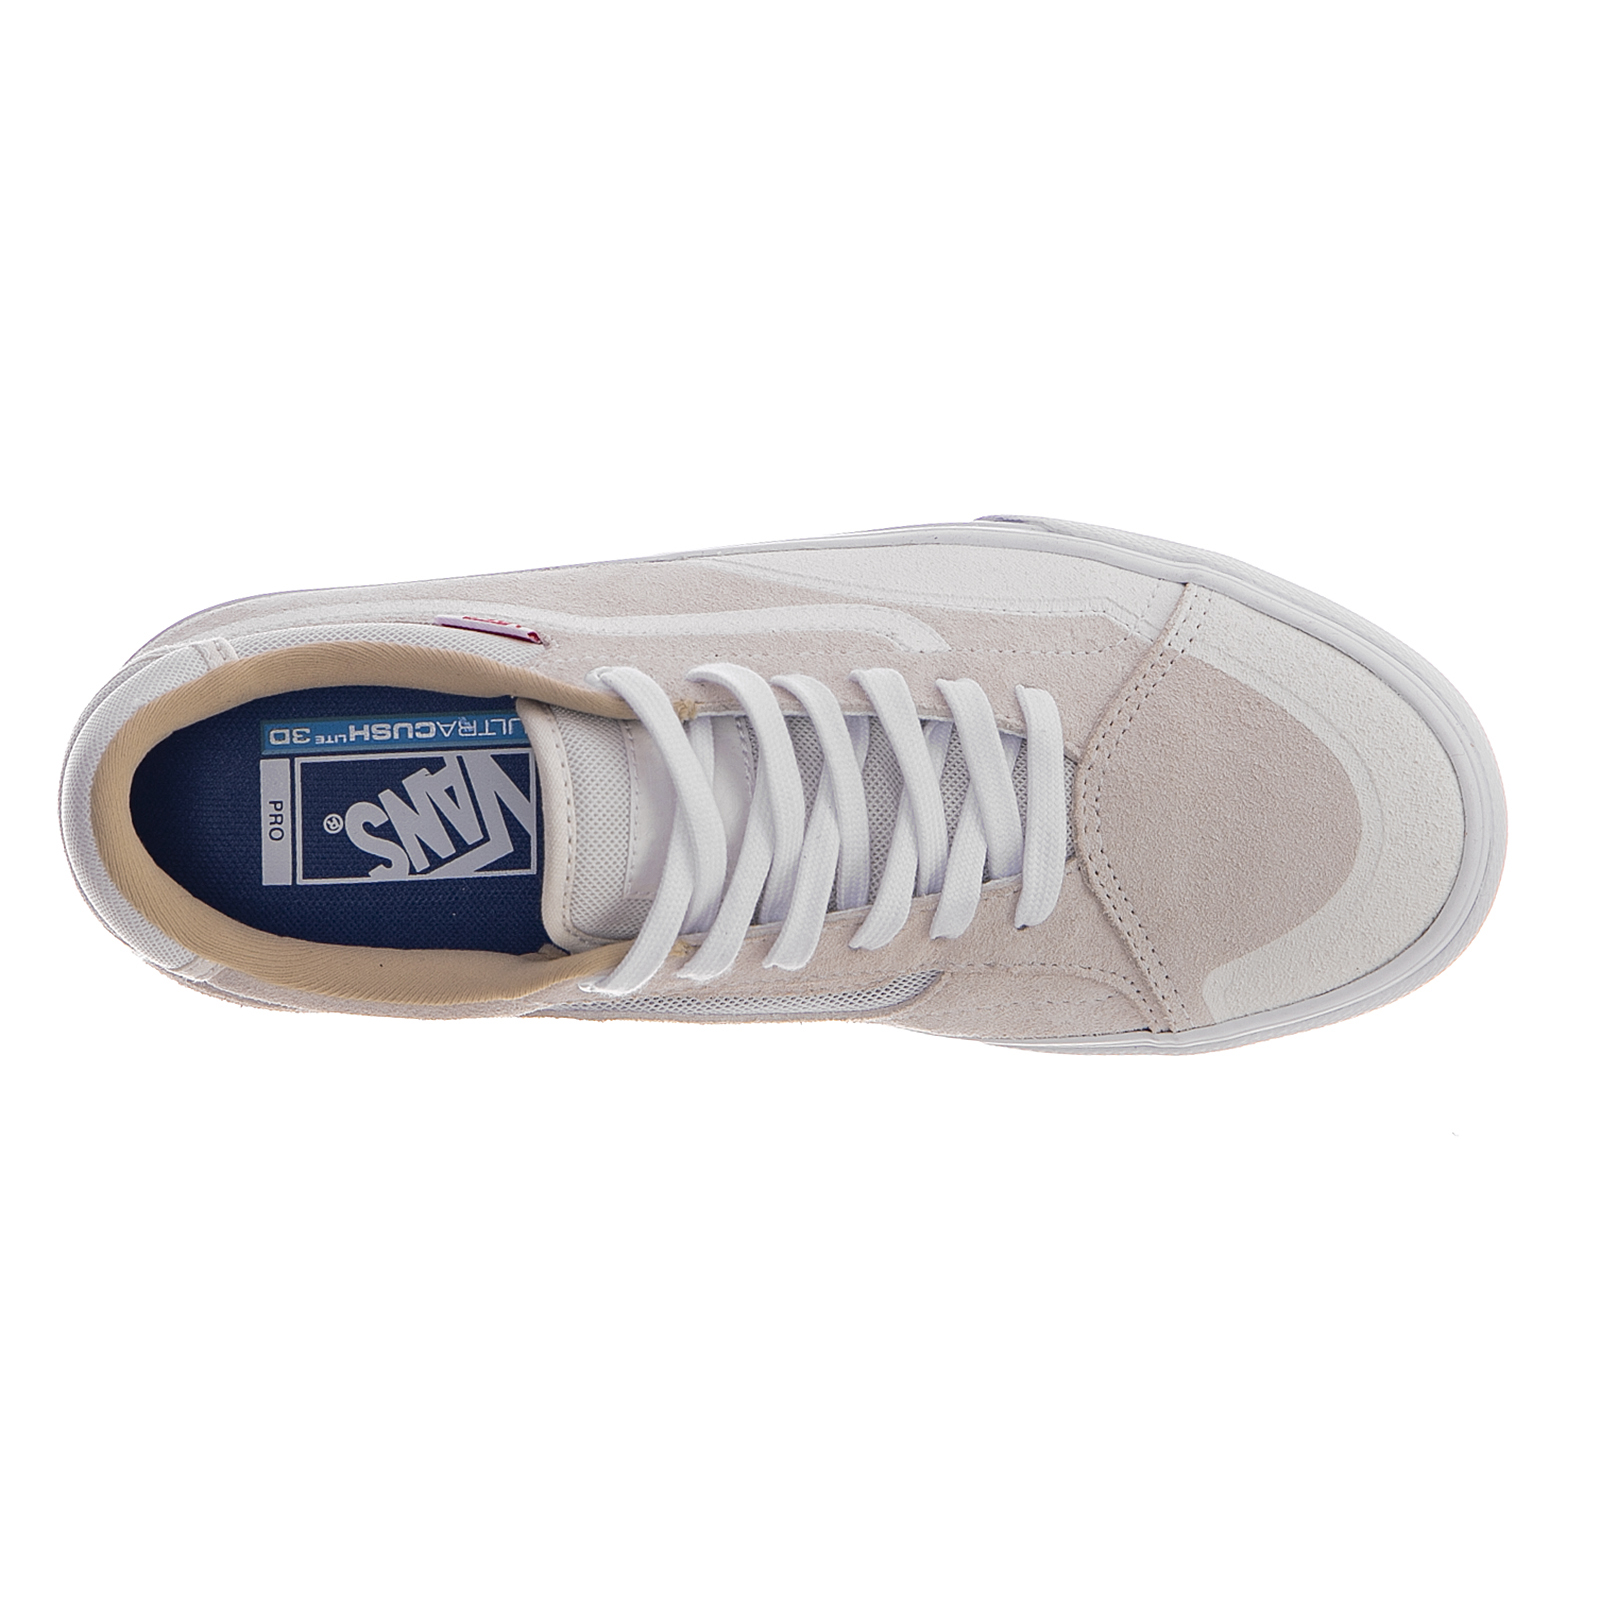 Vans Sneakers Tnt Advanced Advanced Advanced Prot Marshmallow Beige | Forme élégante